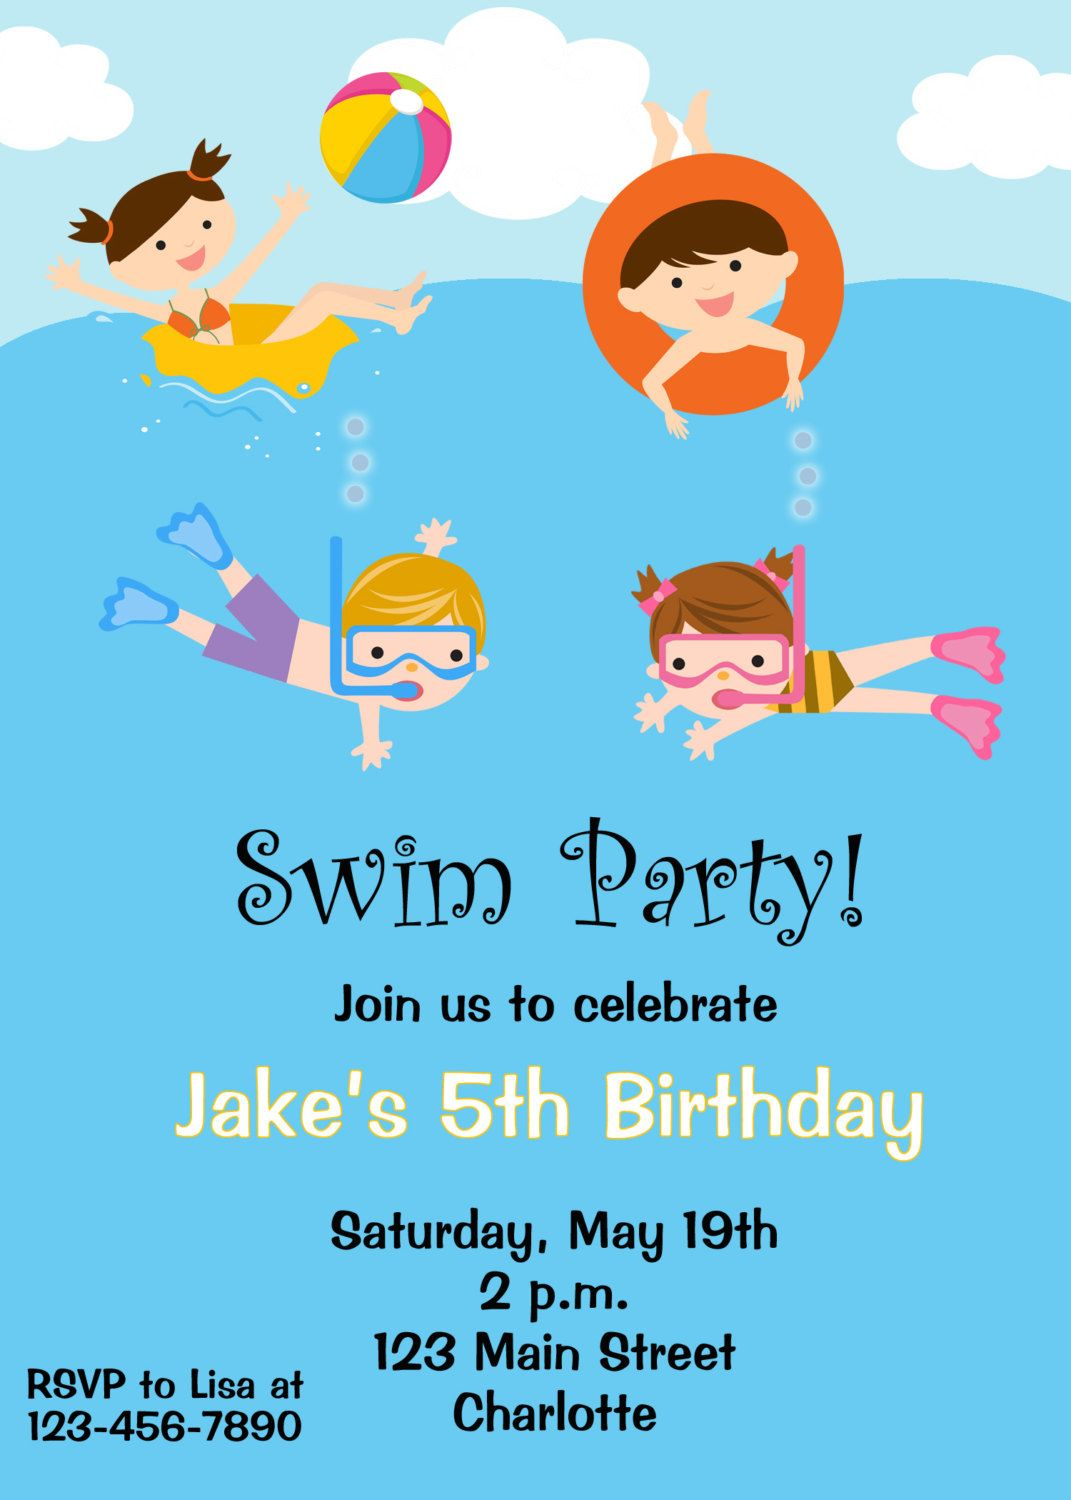 Pool party birthday invitation -- pool party - pool toys - swimming ...